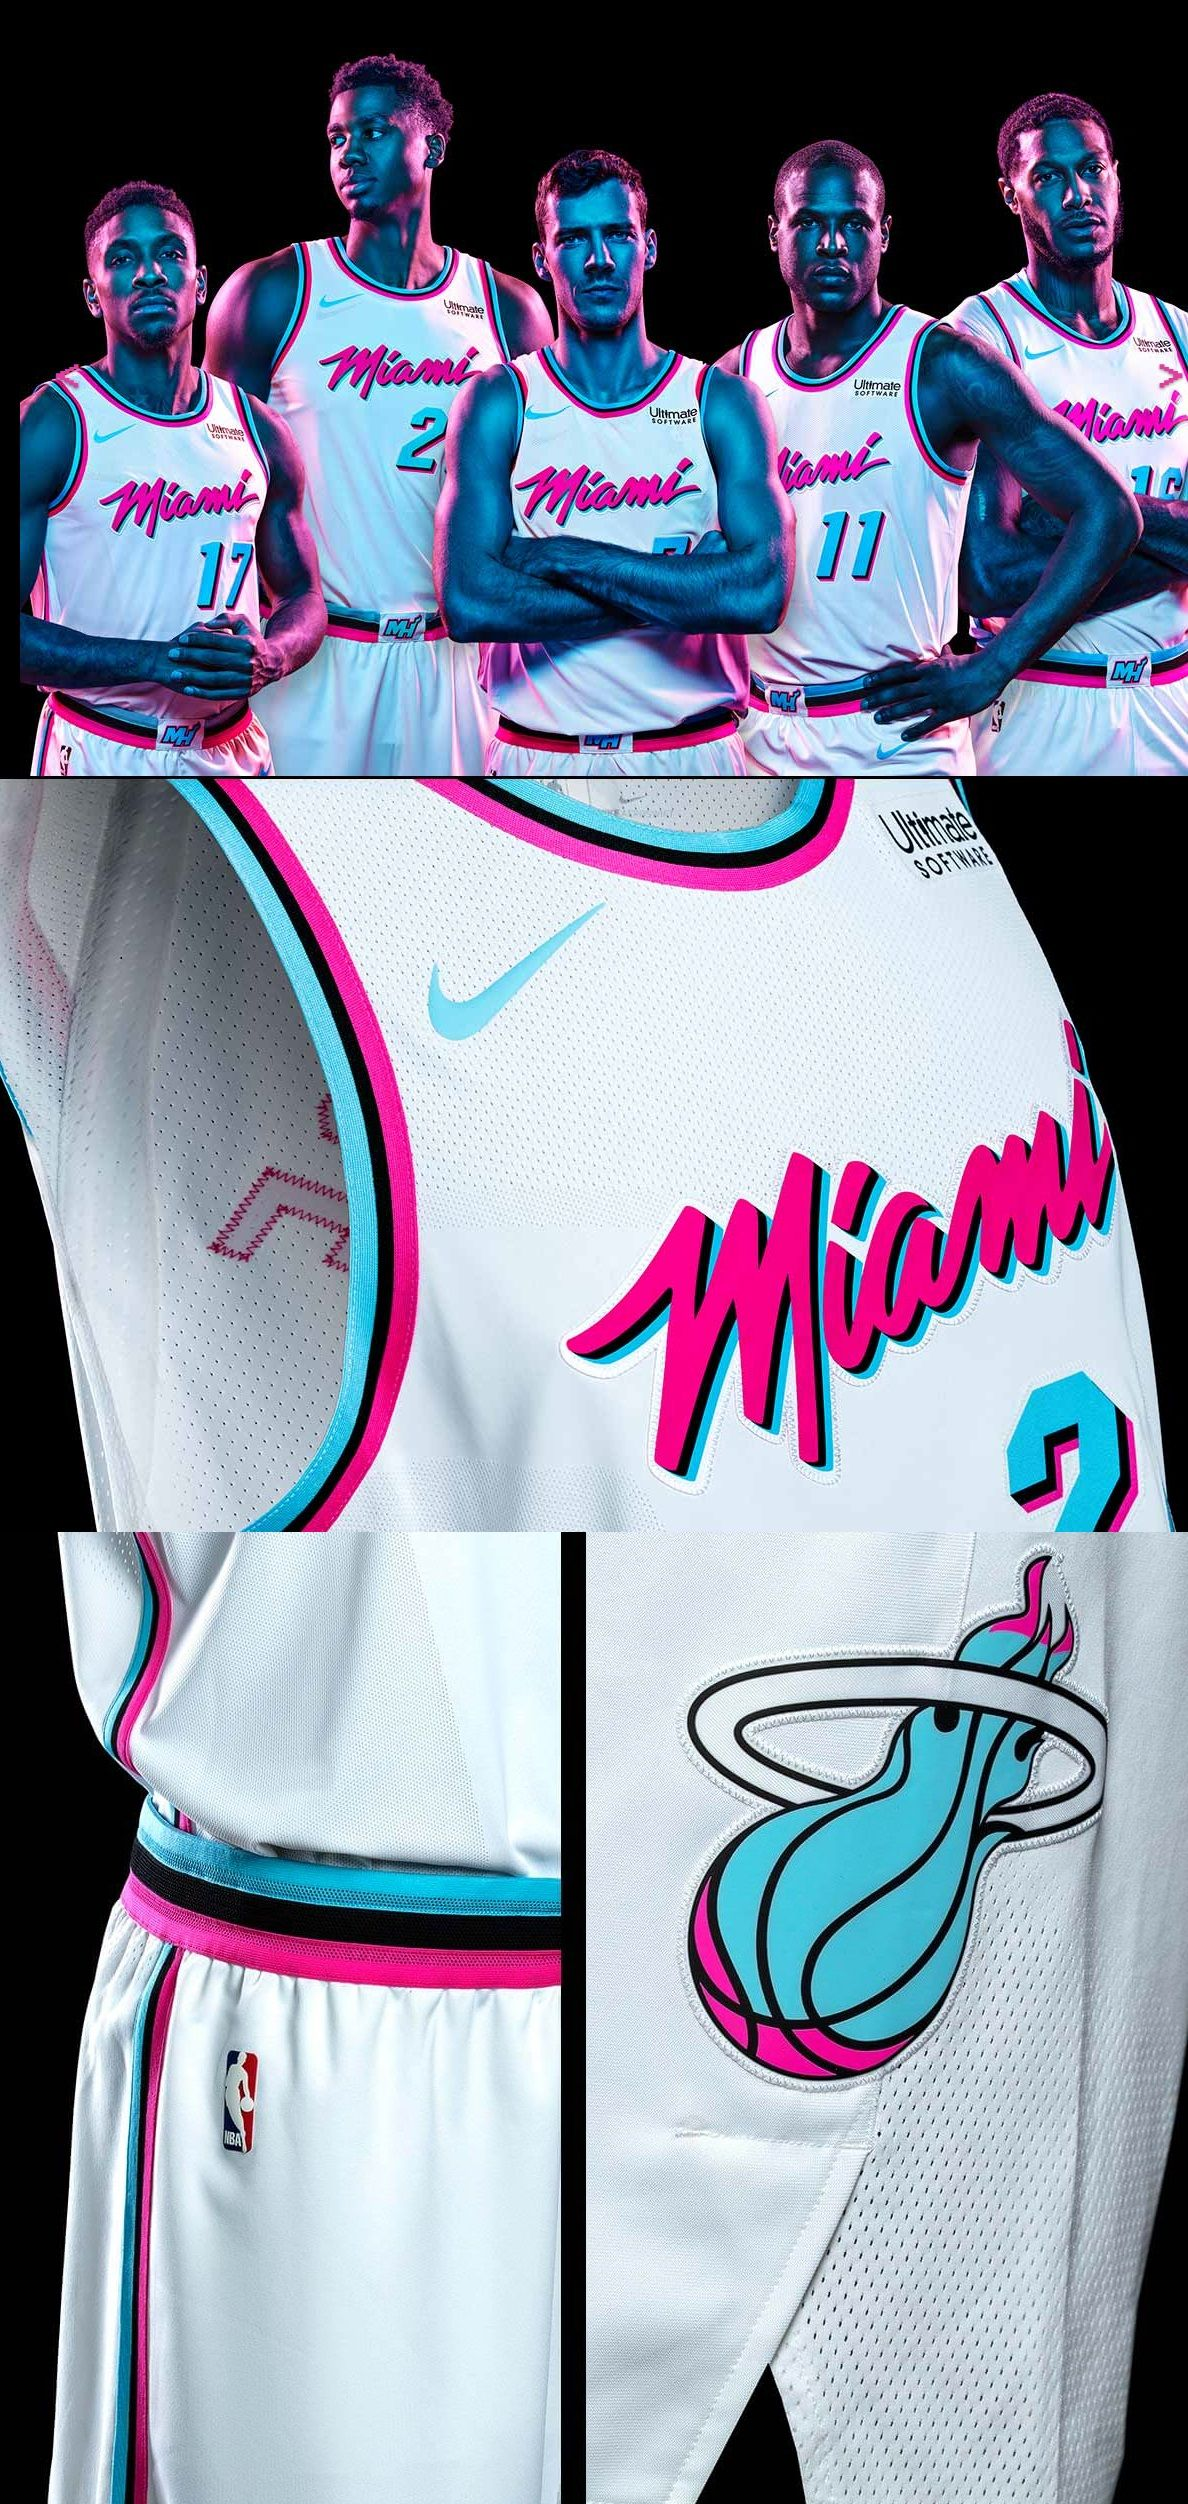 on sale 7ae87 9a592 Miami Heat 'Vice' City Edition Unis #MiamiHeat #MiamiCulture ...